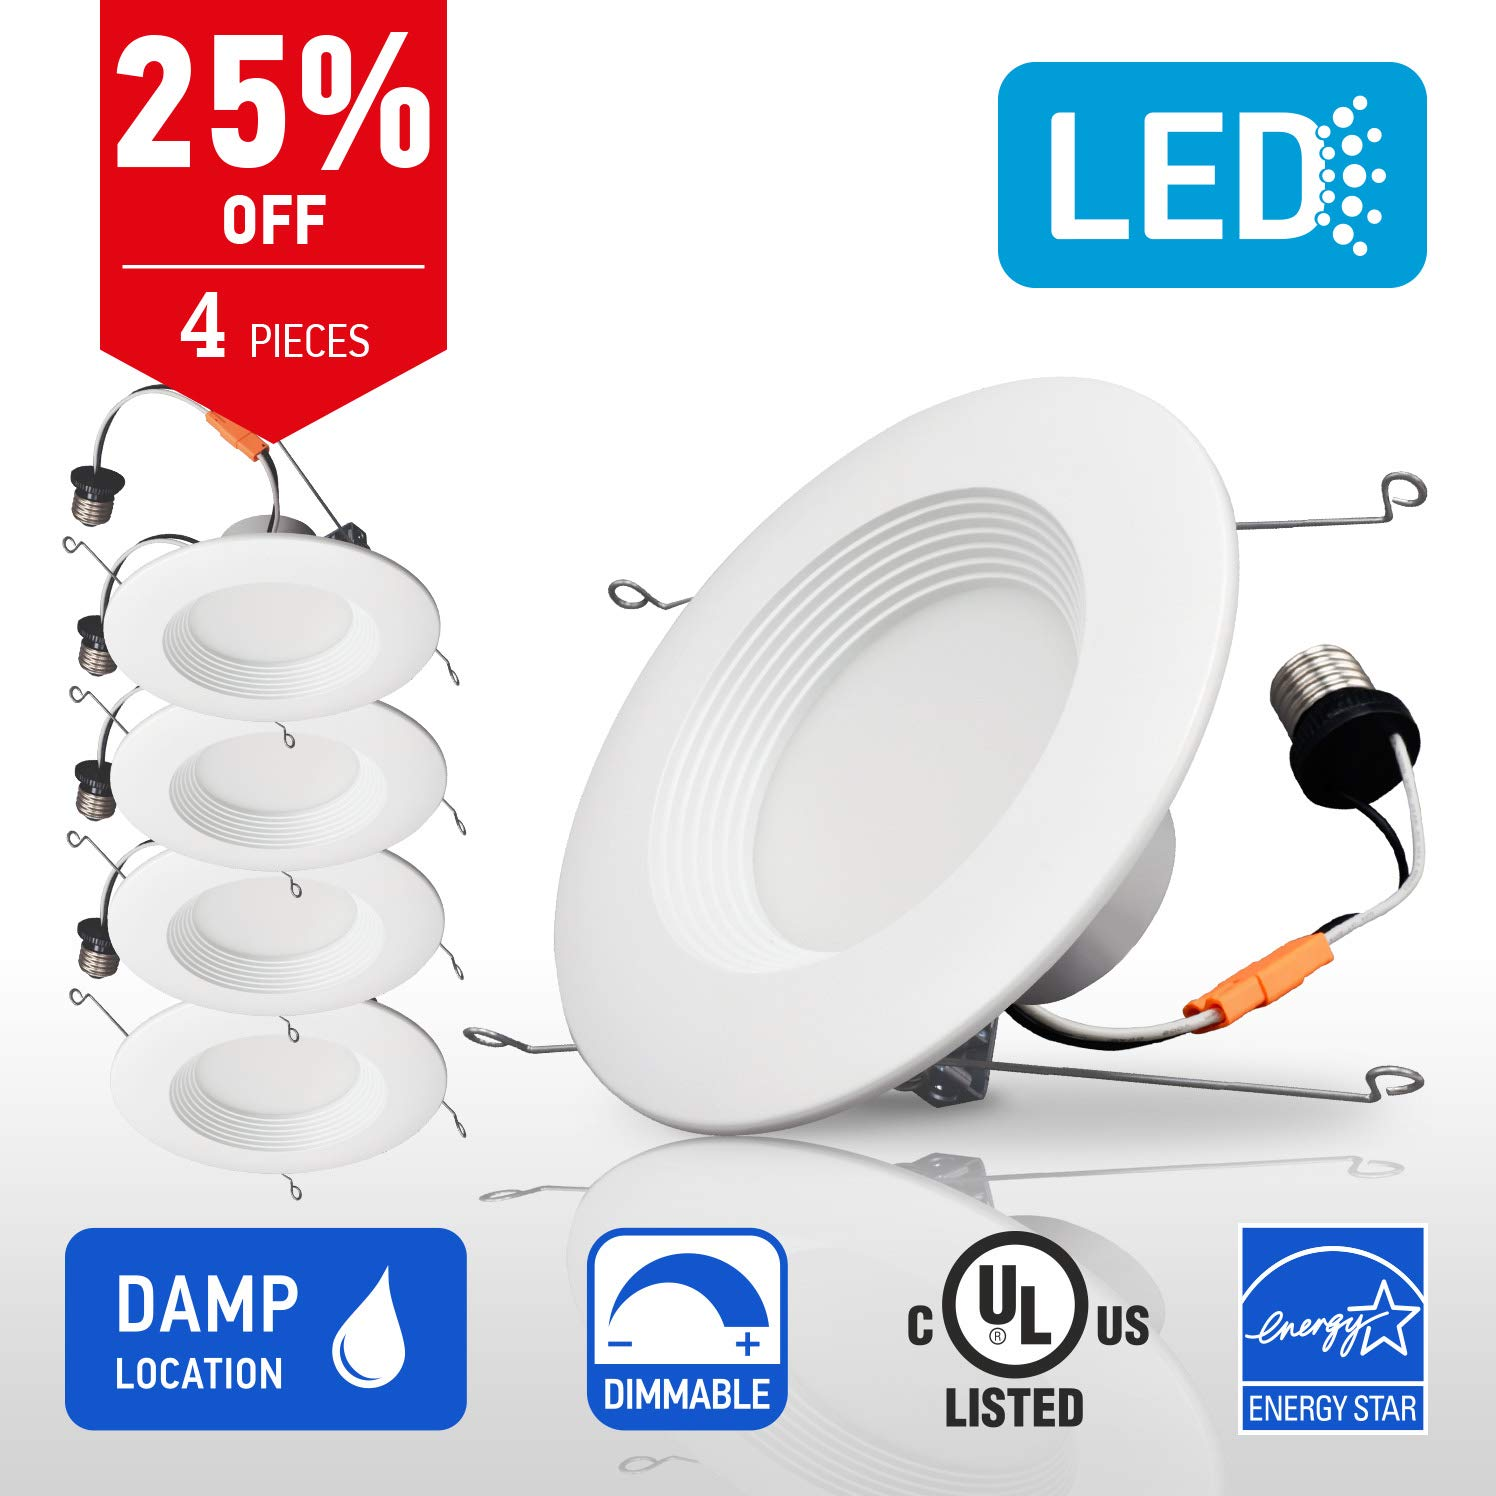 OSTWIN Recessed Lighting, Led 5-6 inch Can Pot Lights for Ceiling, Round Downlight Retrofit Kit Fixture, Baffle Trim, 18W (90 Watt), 4000K (Cool White) Dimmable, (4 Pack) UL & Energy Star Listed